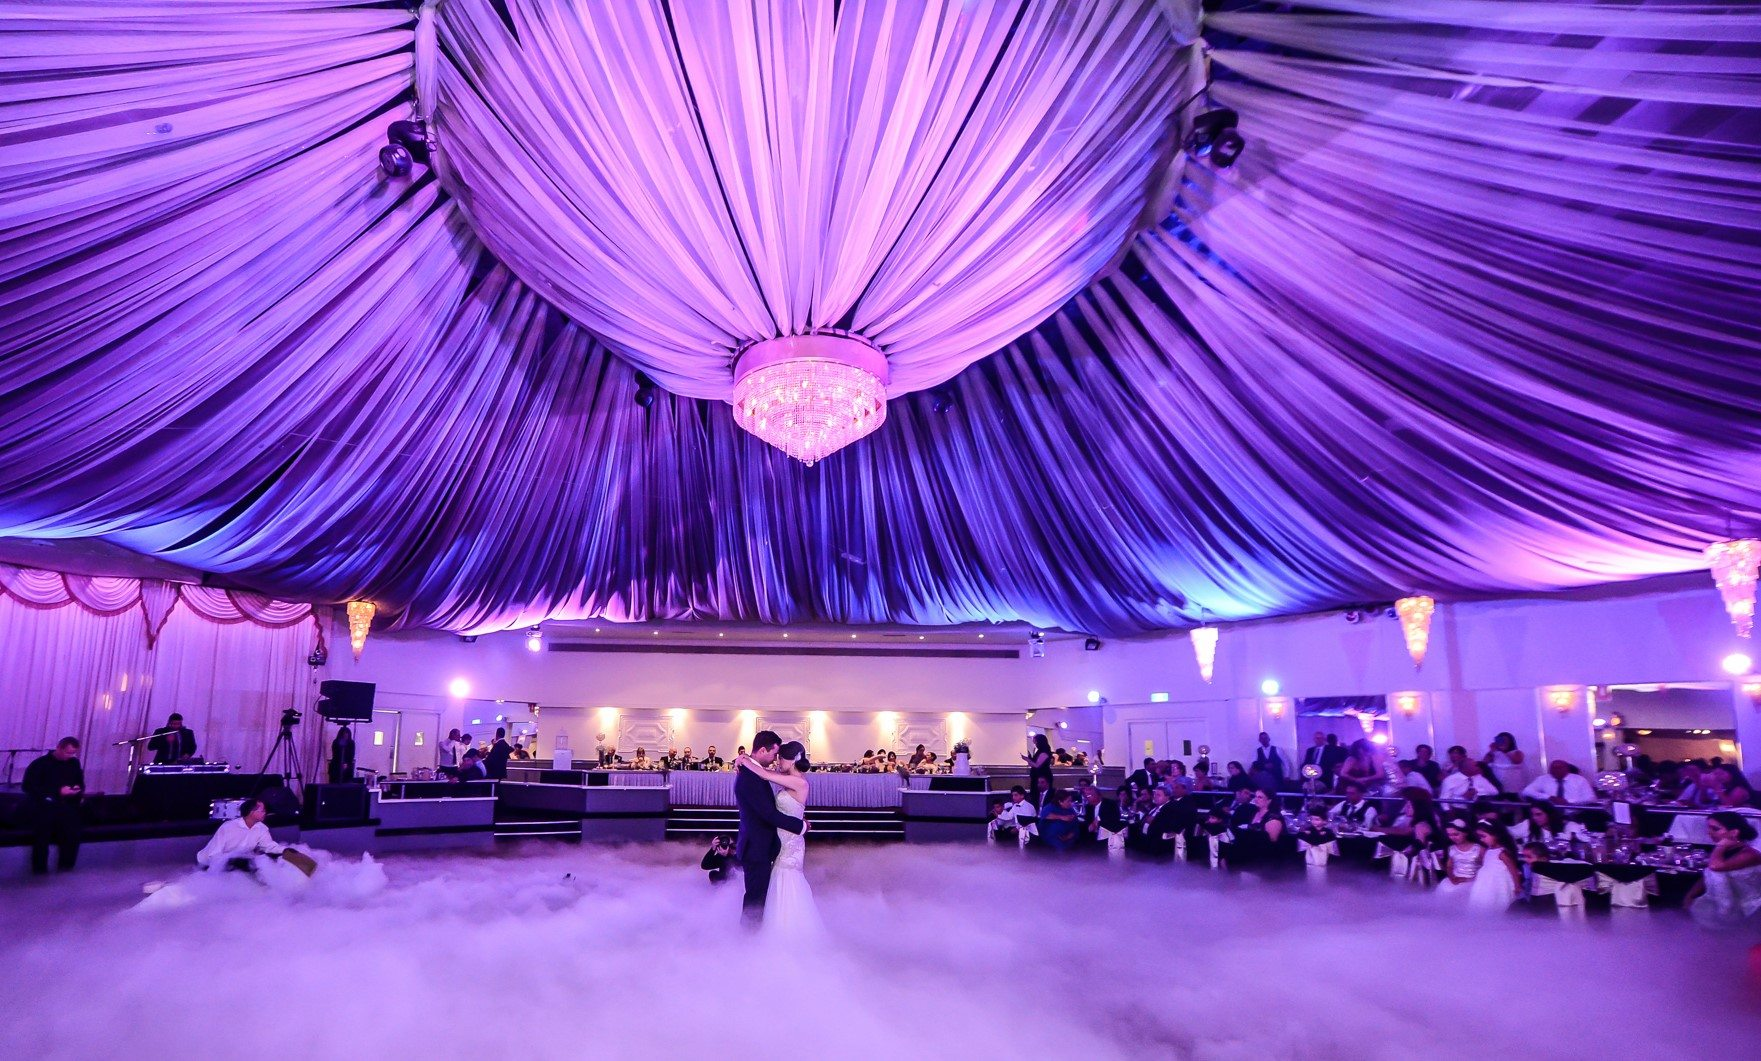 bride and groom dancing under canopy violet canopy in ballroom